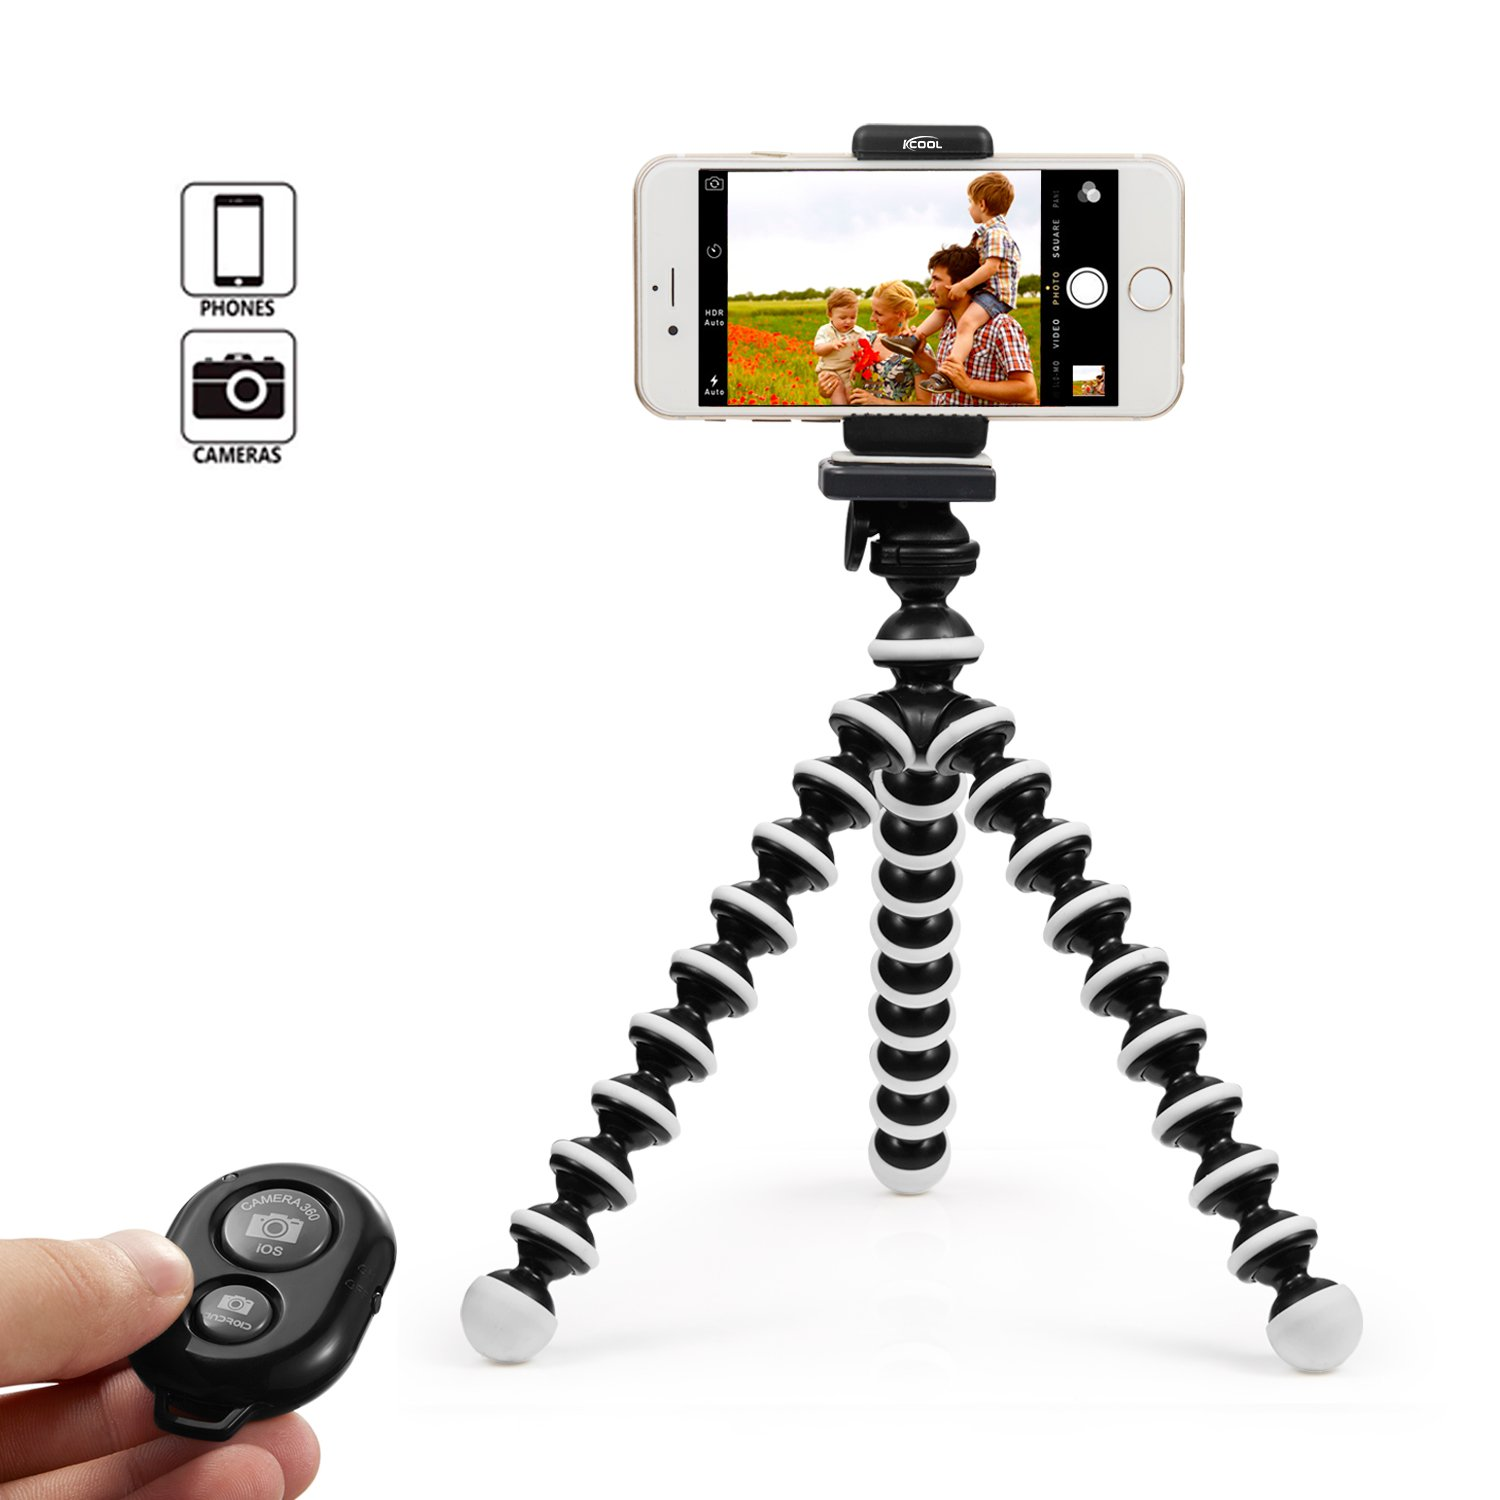 KCOOL Phone Tripod Stand Holder for iPhone, Cellphone ,Camera with Universal Clip and Remote (Black White)